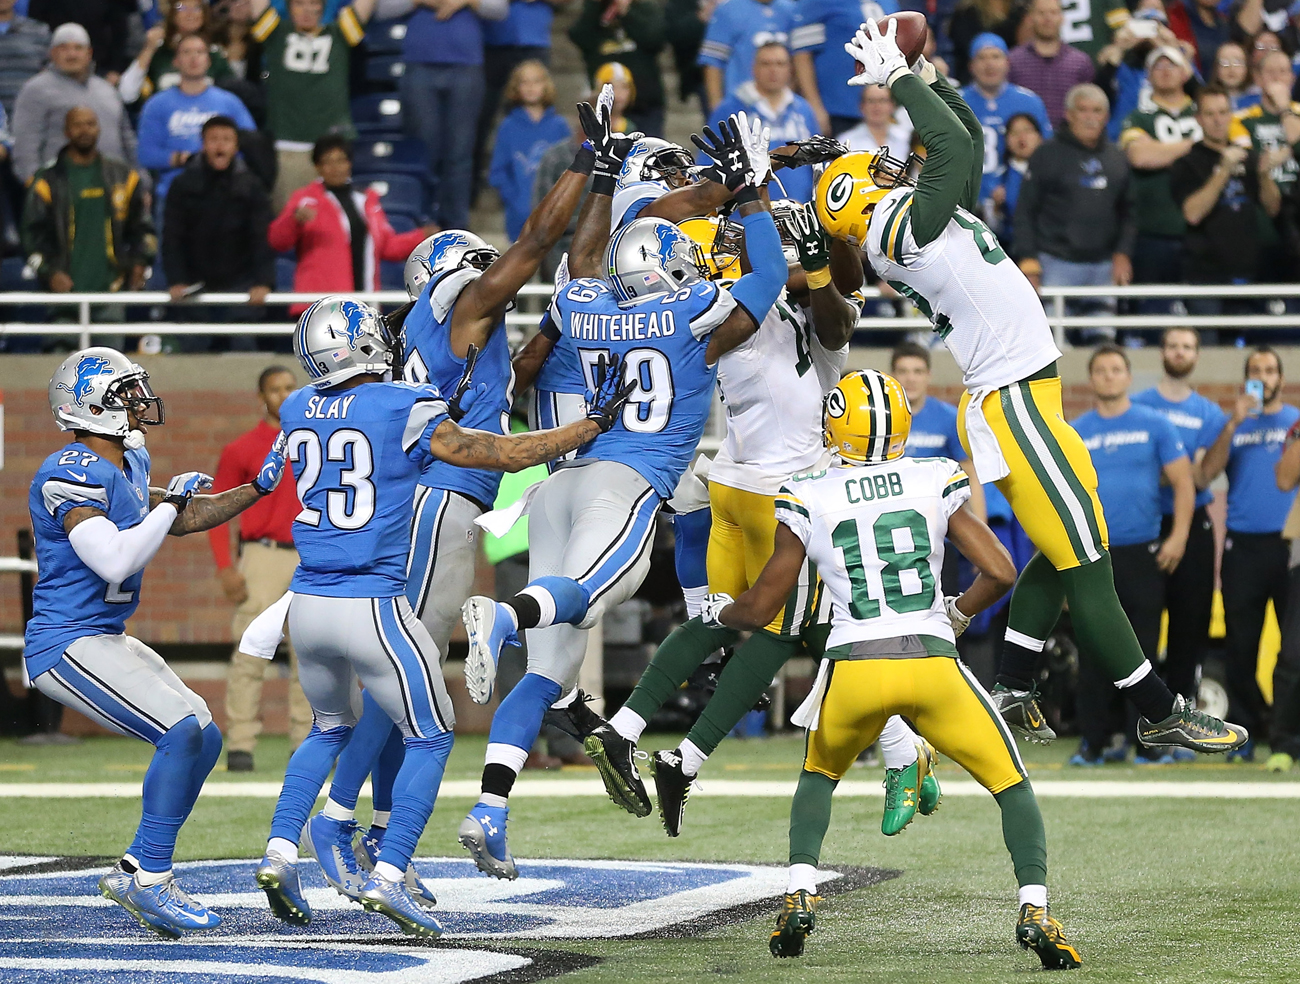 The Rodgers-to-Rodgers Hail Mary slayed the Lions.